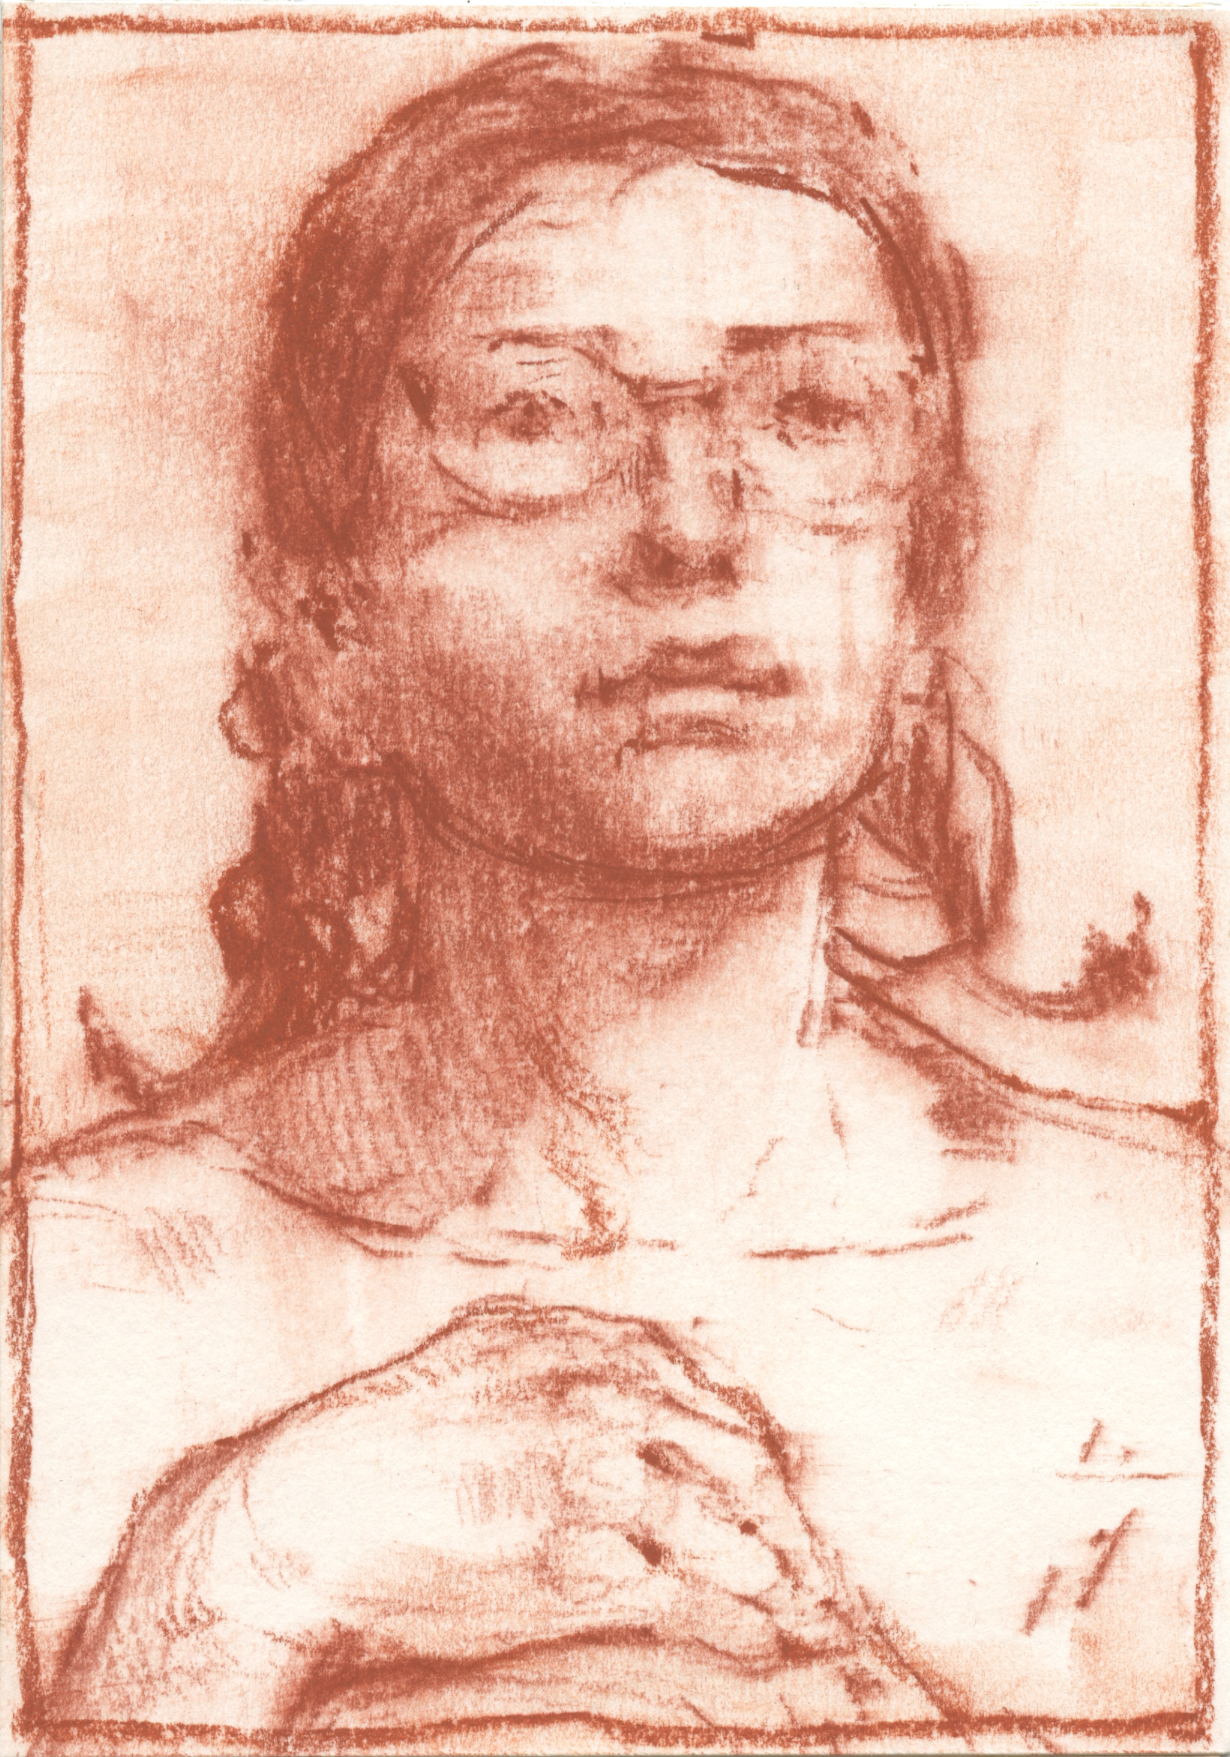 Lot 584 Beth (In Glasses) - Contè Crayon on Card